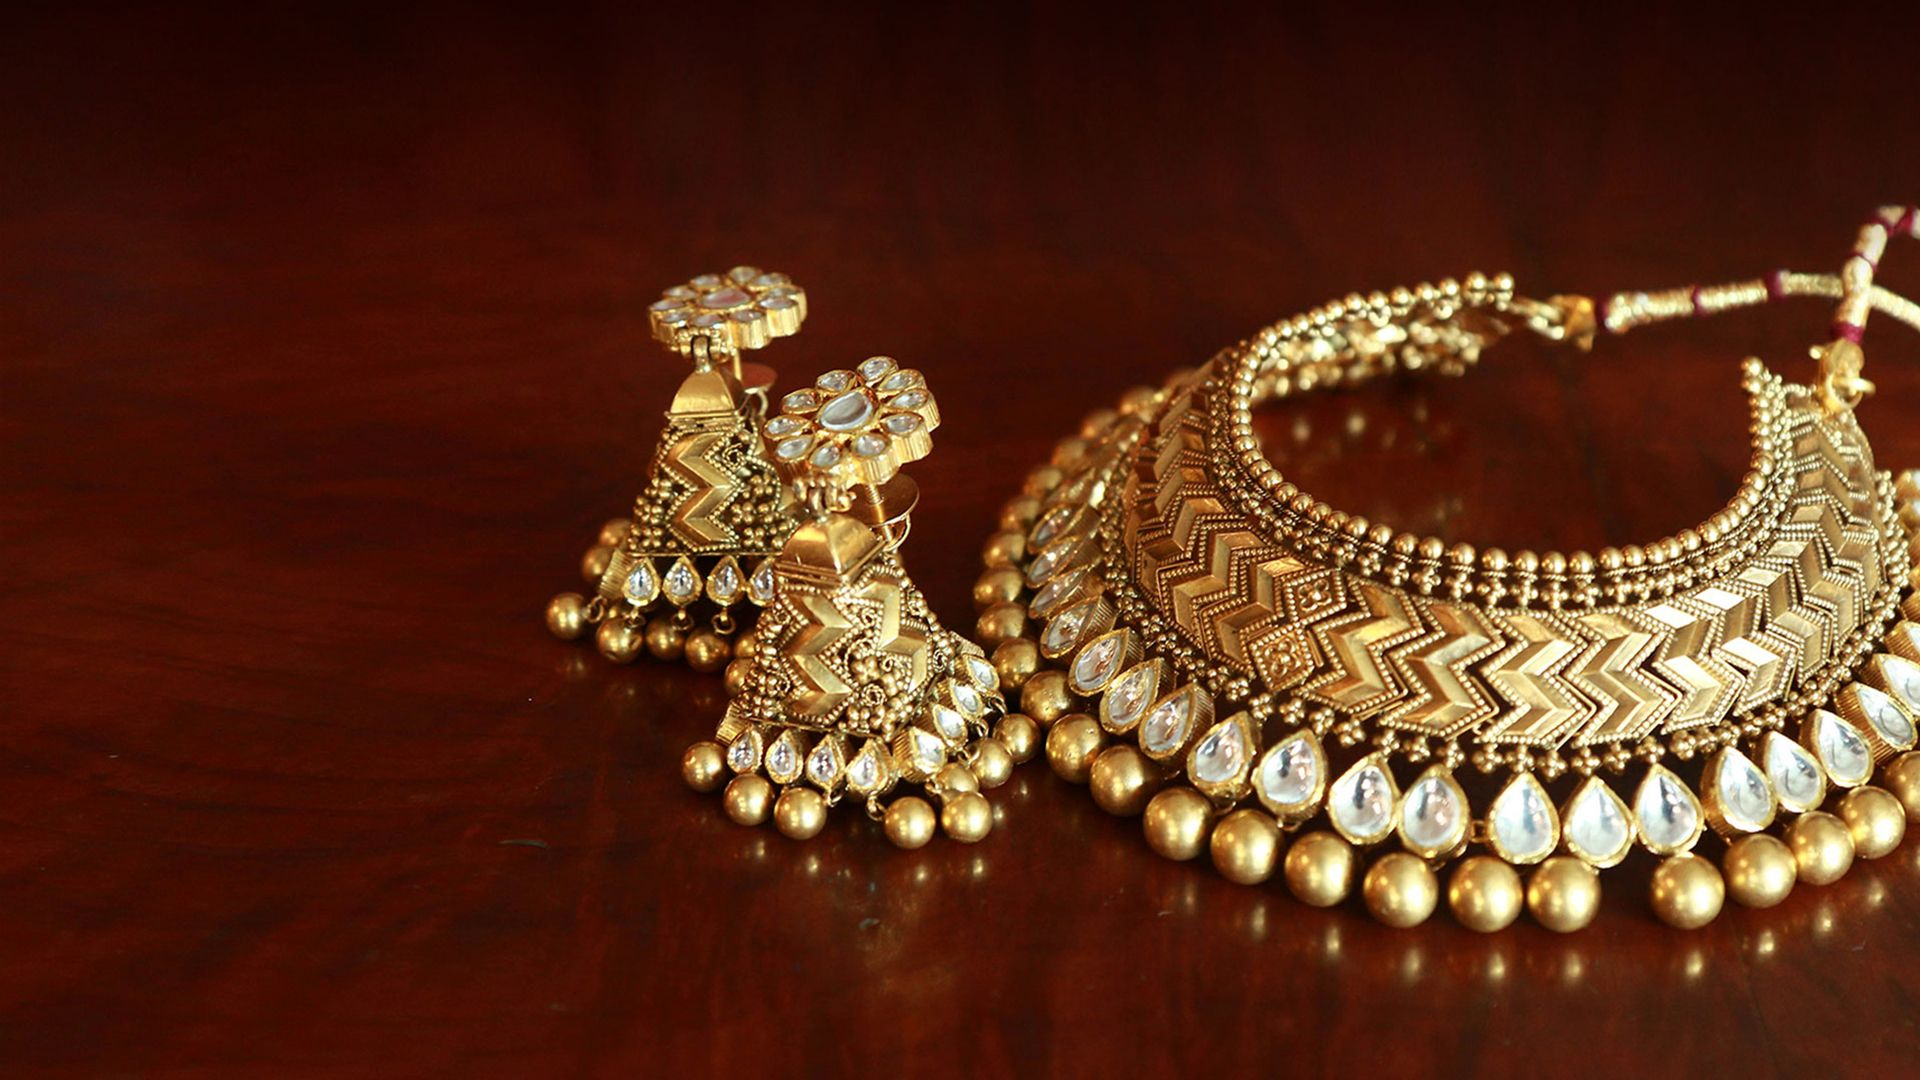 Hd Jewellery Images